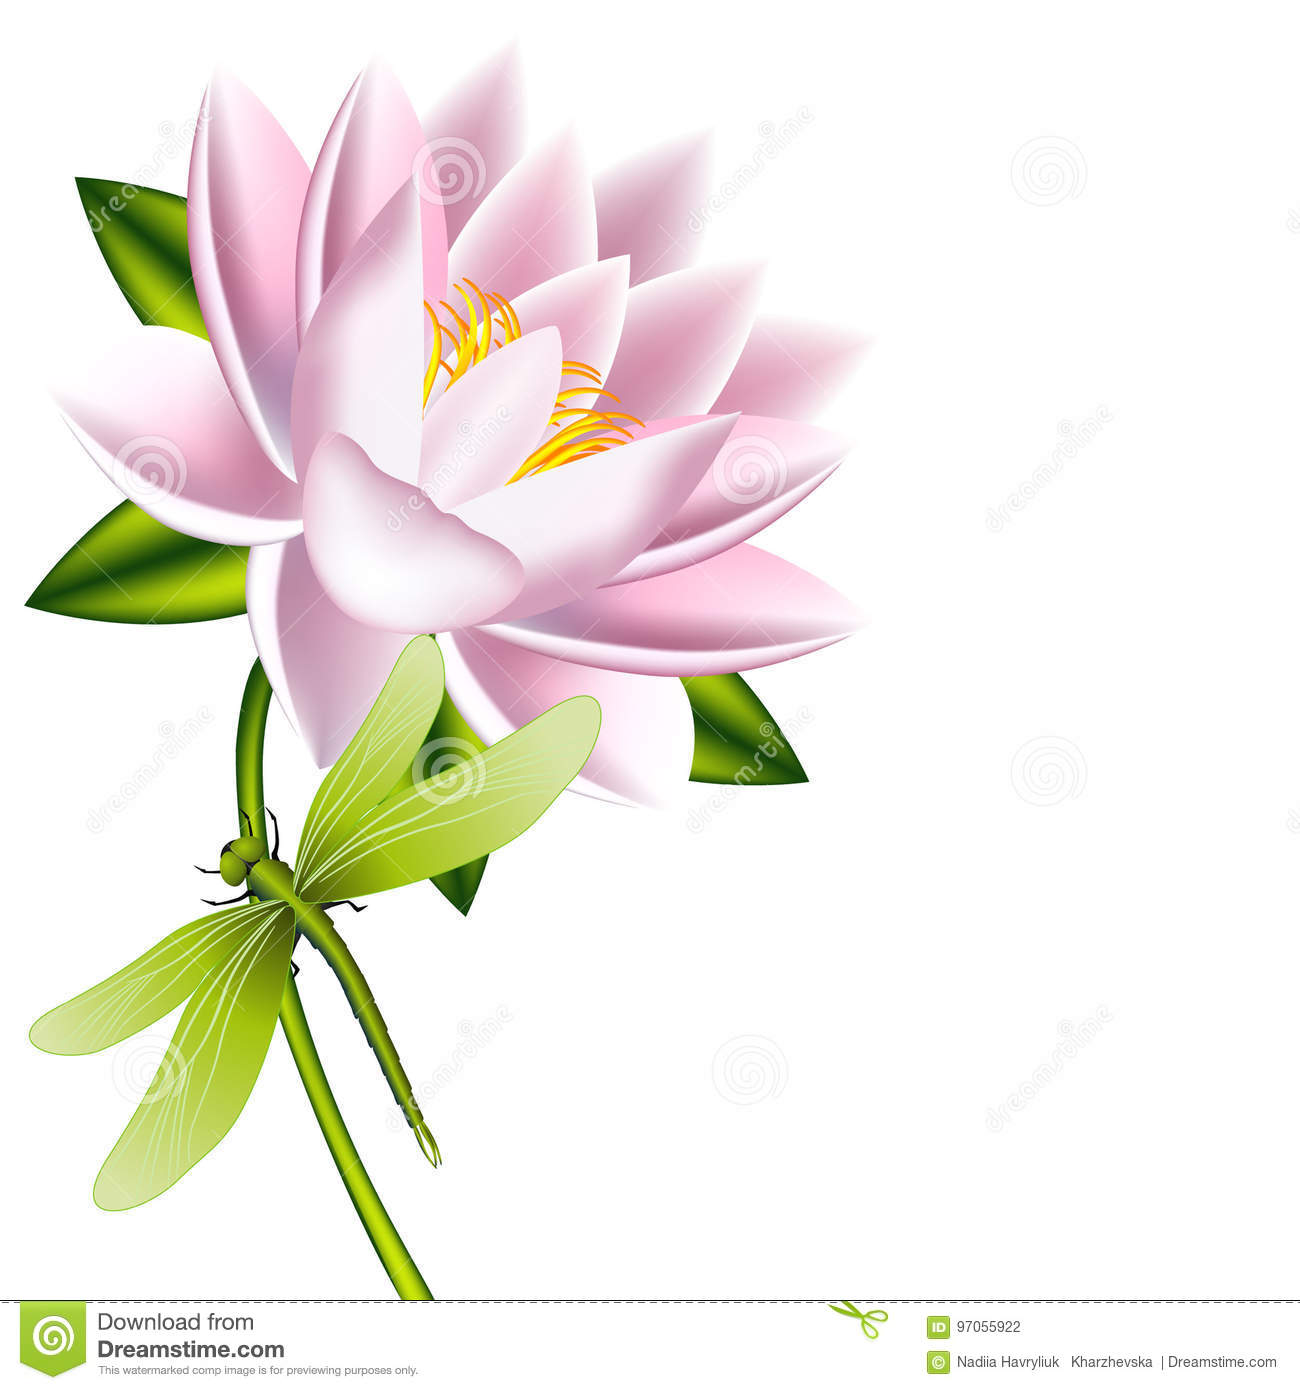 A Lotus Flower With Dragonfly On A White Background Stock Vector